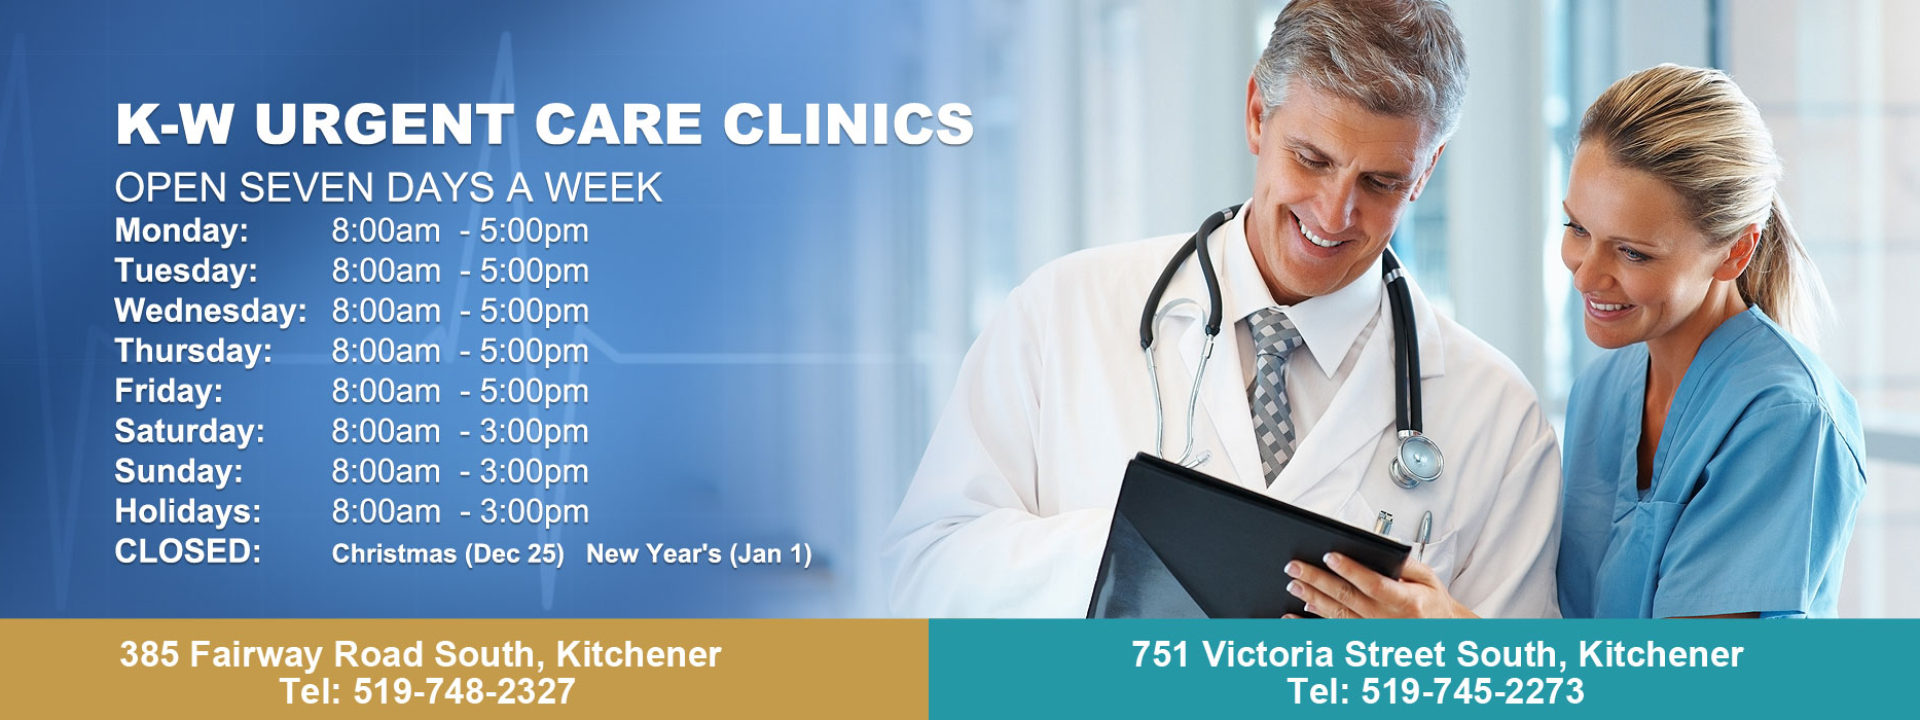 KW Urgent Care Clinics | Walk-in Urgent Care Medical Clinic in Kitchener